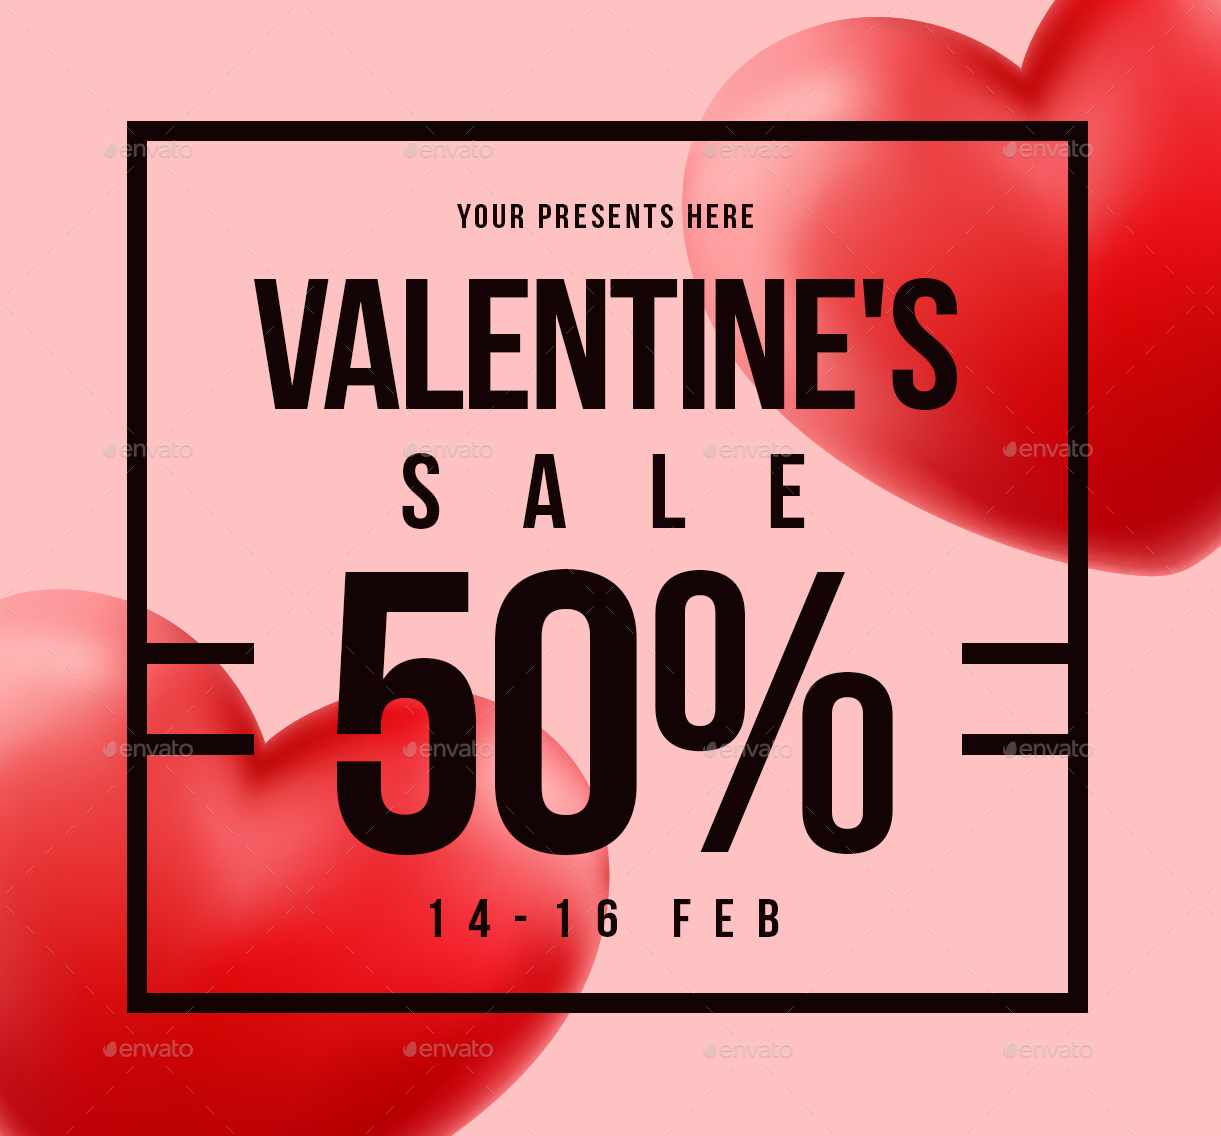 preview image set01_valentine sale instragramjpg preview image set02_valentine sale instragramjpg preview image set03_valentine sale instragramjpg - Valentine Sale